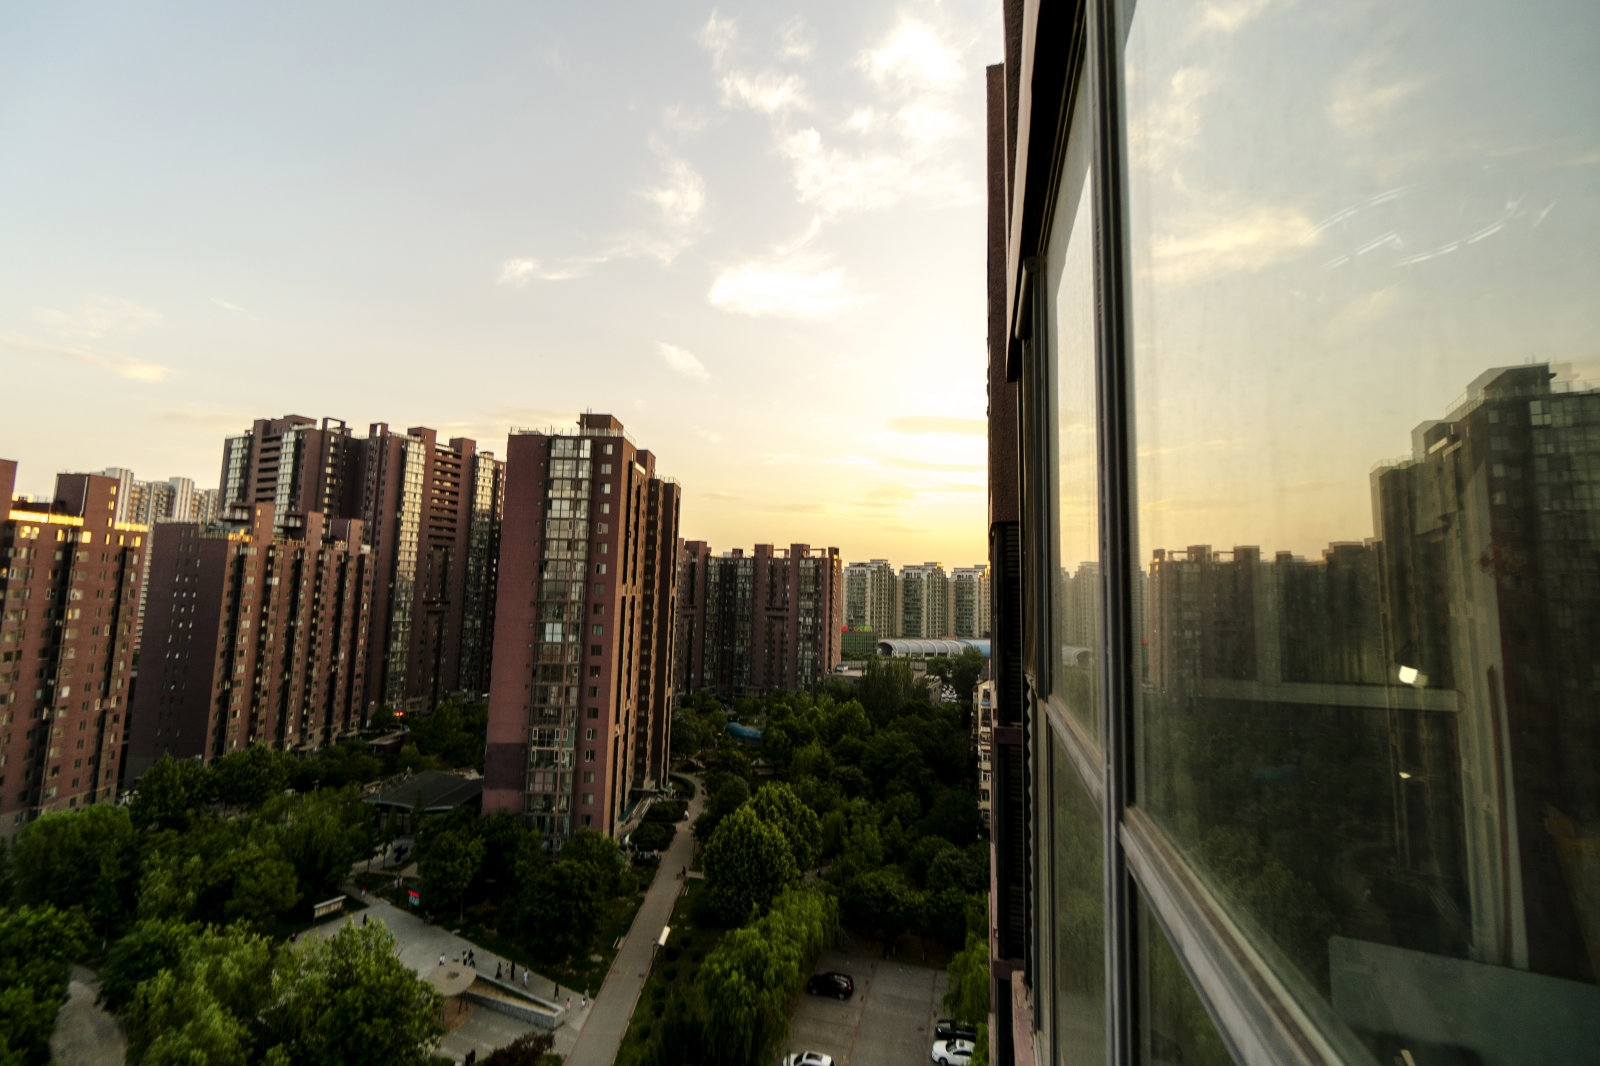 Beijing uses face-detecting smart locks to curb public housing abuses | DeviceDaily.com